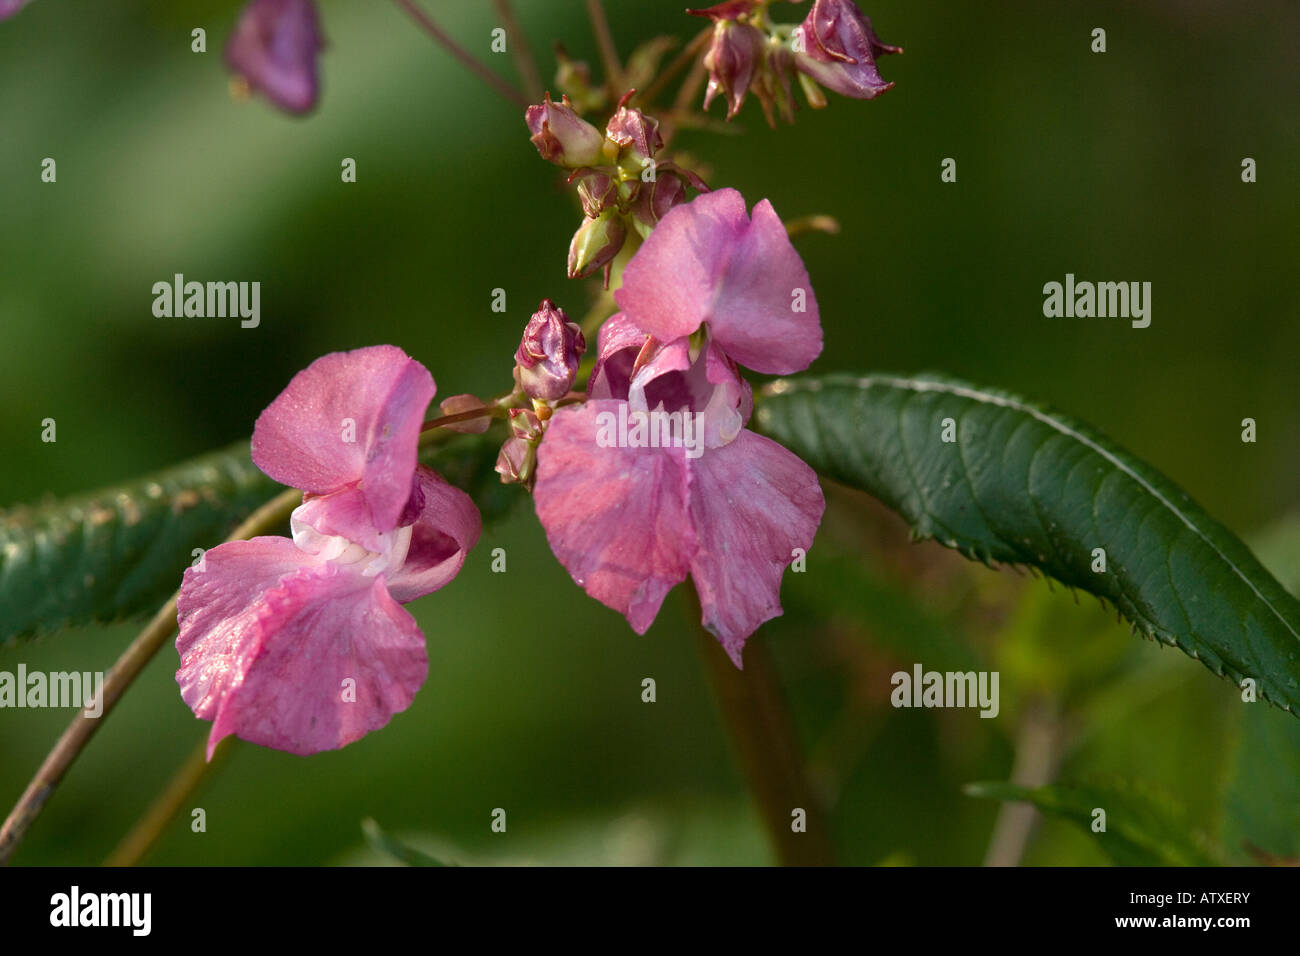 Policemen's Helmet or Himalayan Balsam Impatiens glandulifera from Himalayas but spreading rapidly in Europe - Stock Image